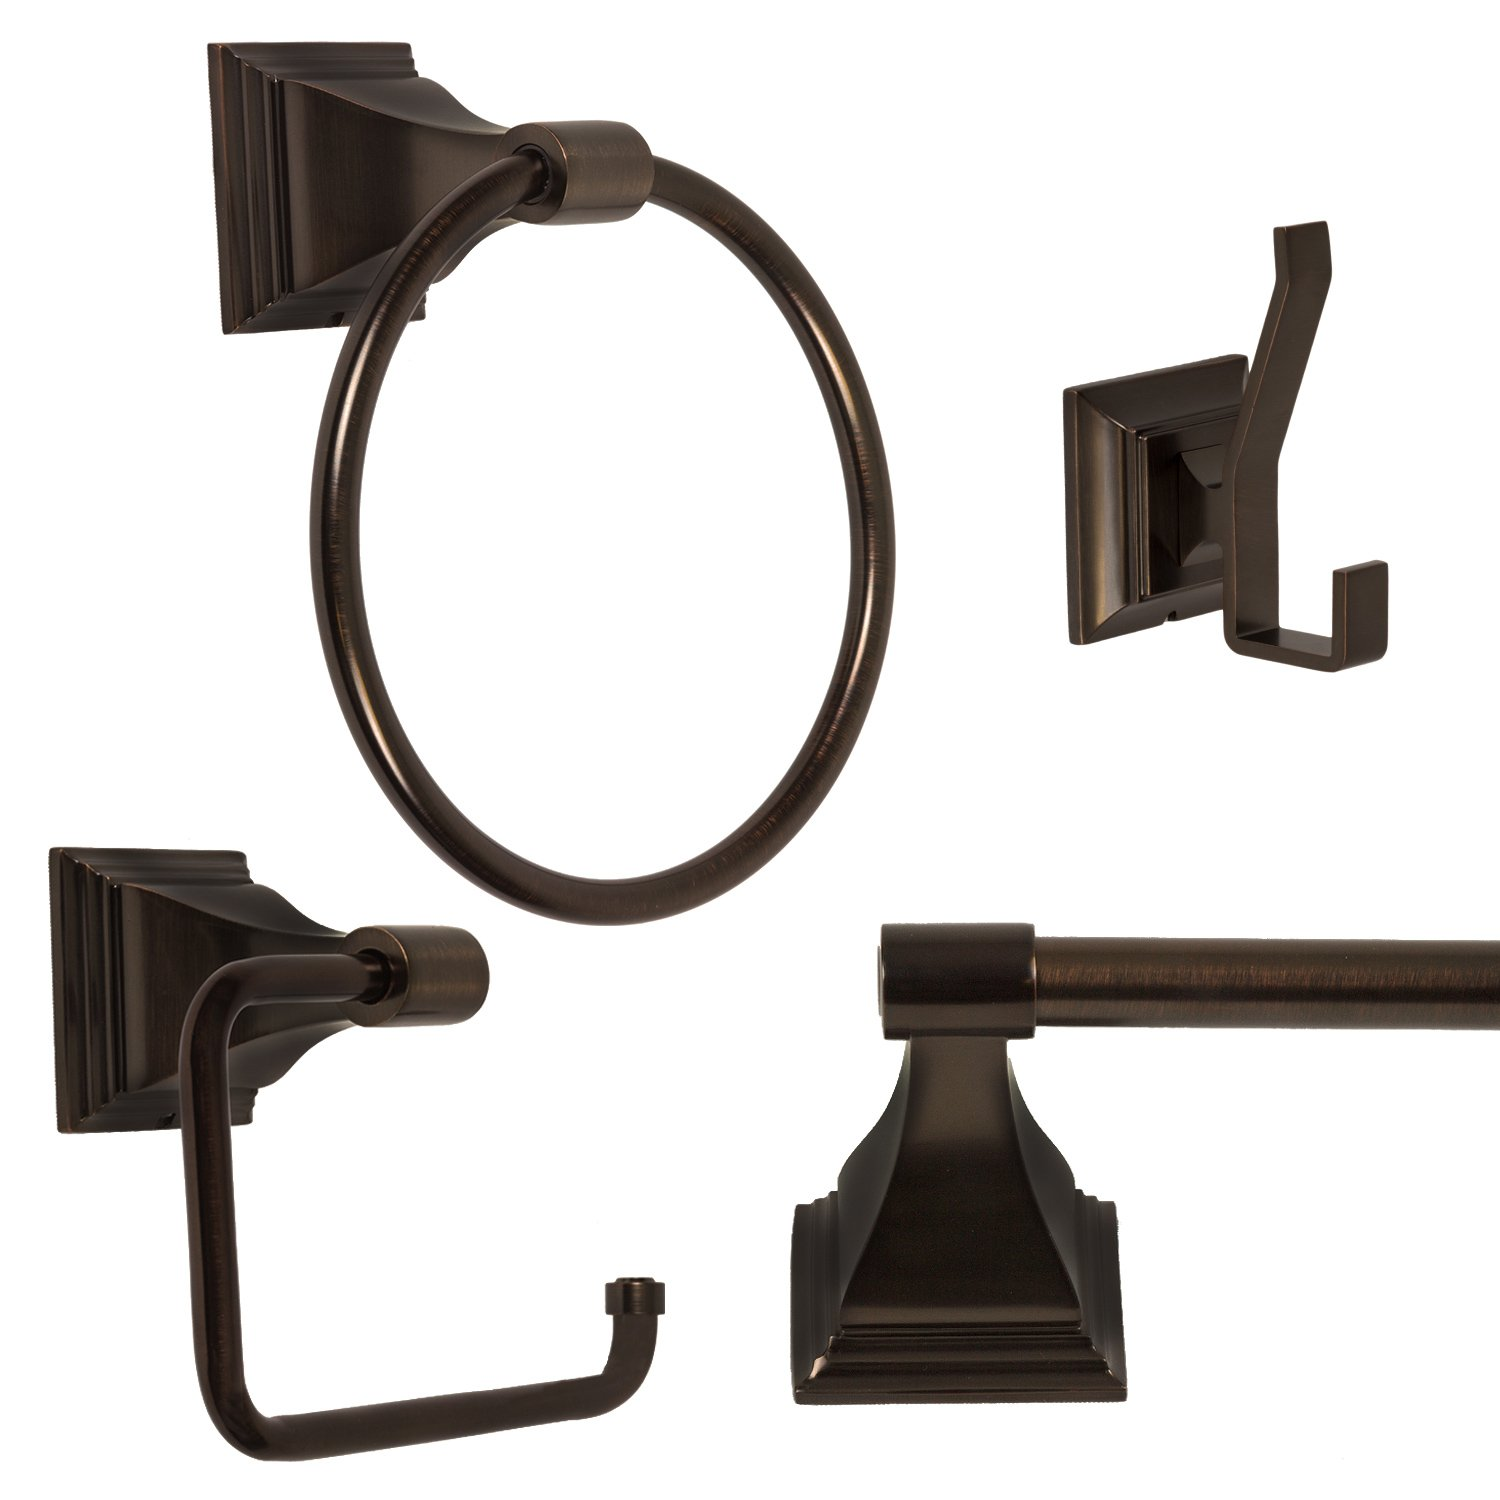 4-Piece Bathroom Hardware Accessory Set With 24'' Towel Bar - Oil Rubbed Bronze